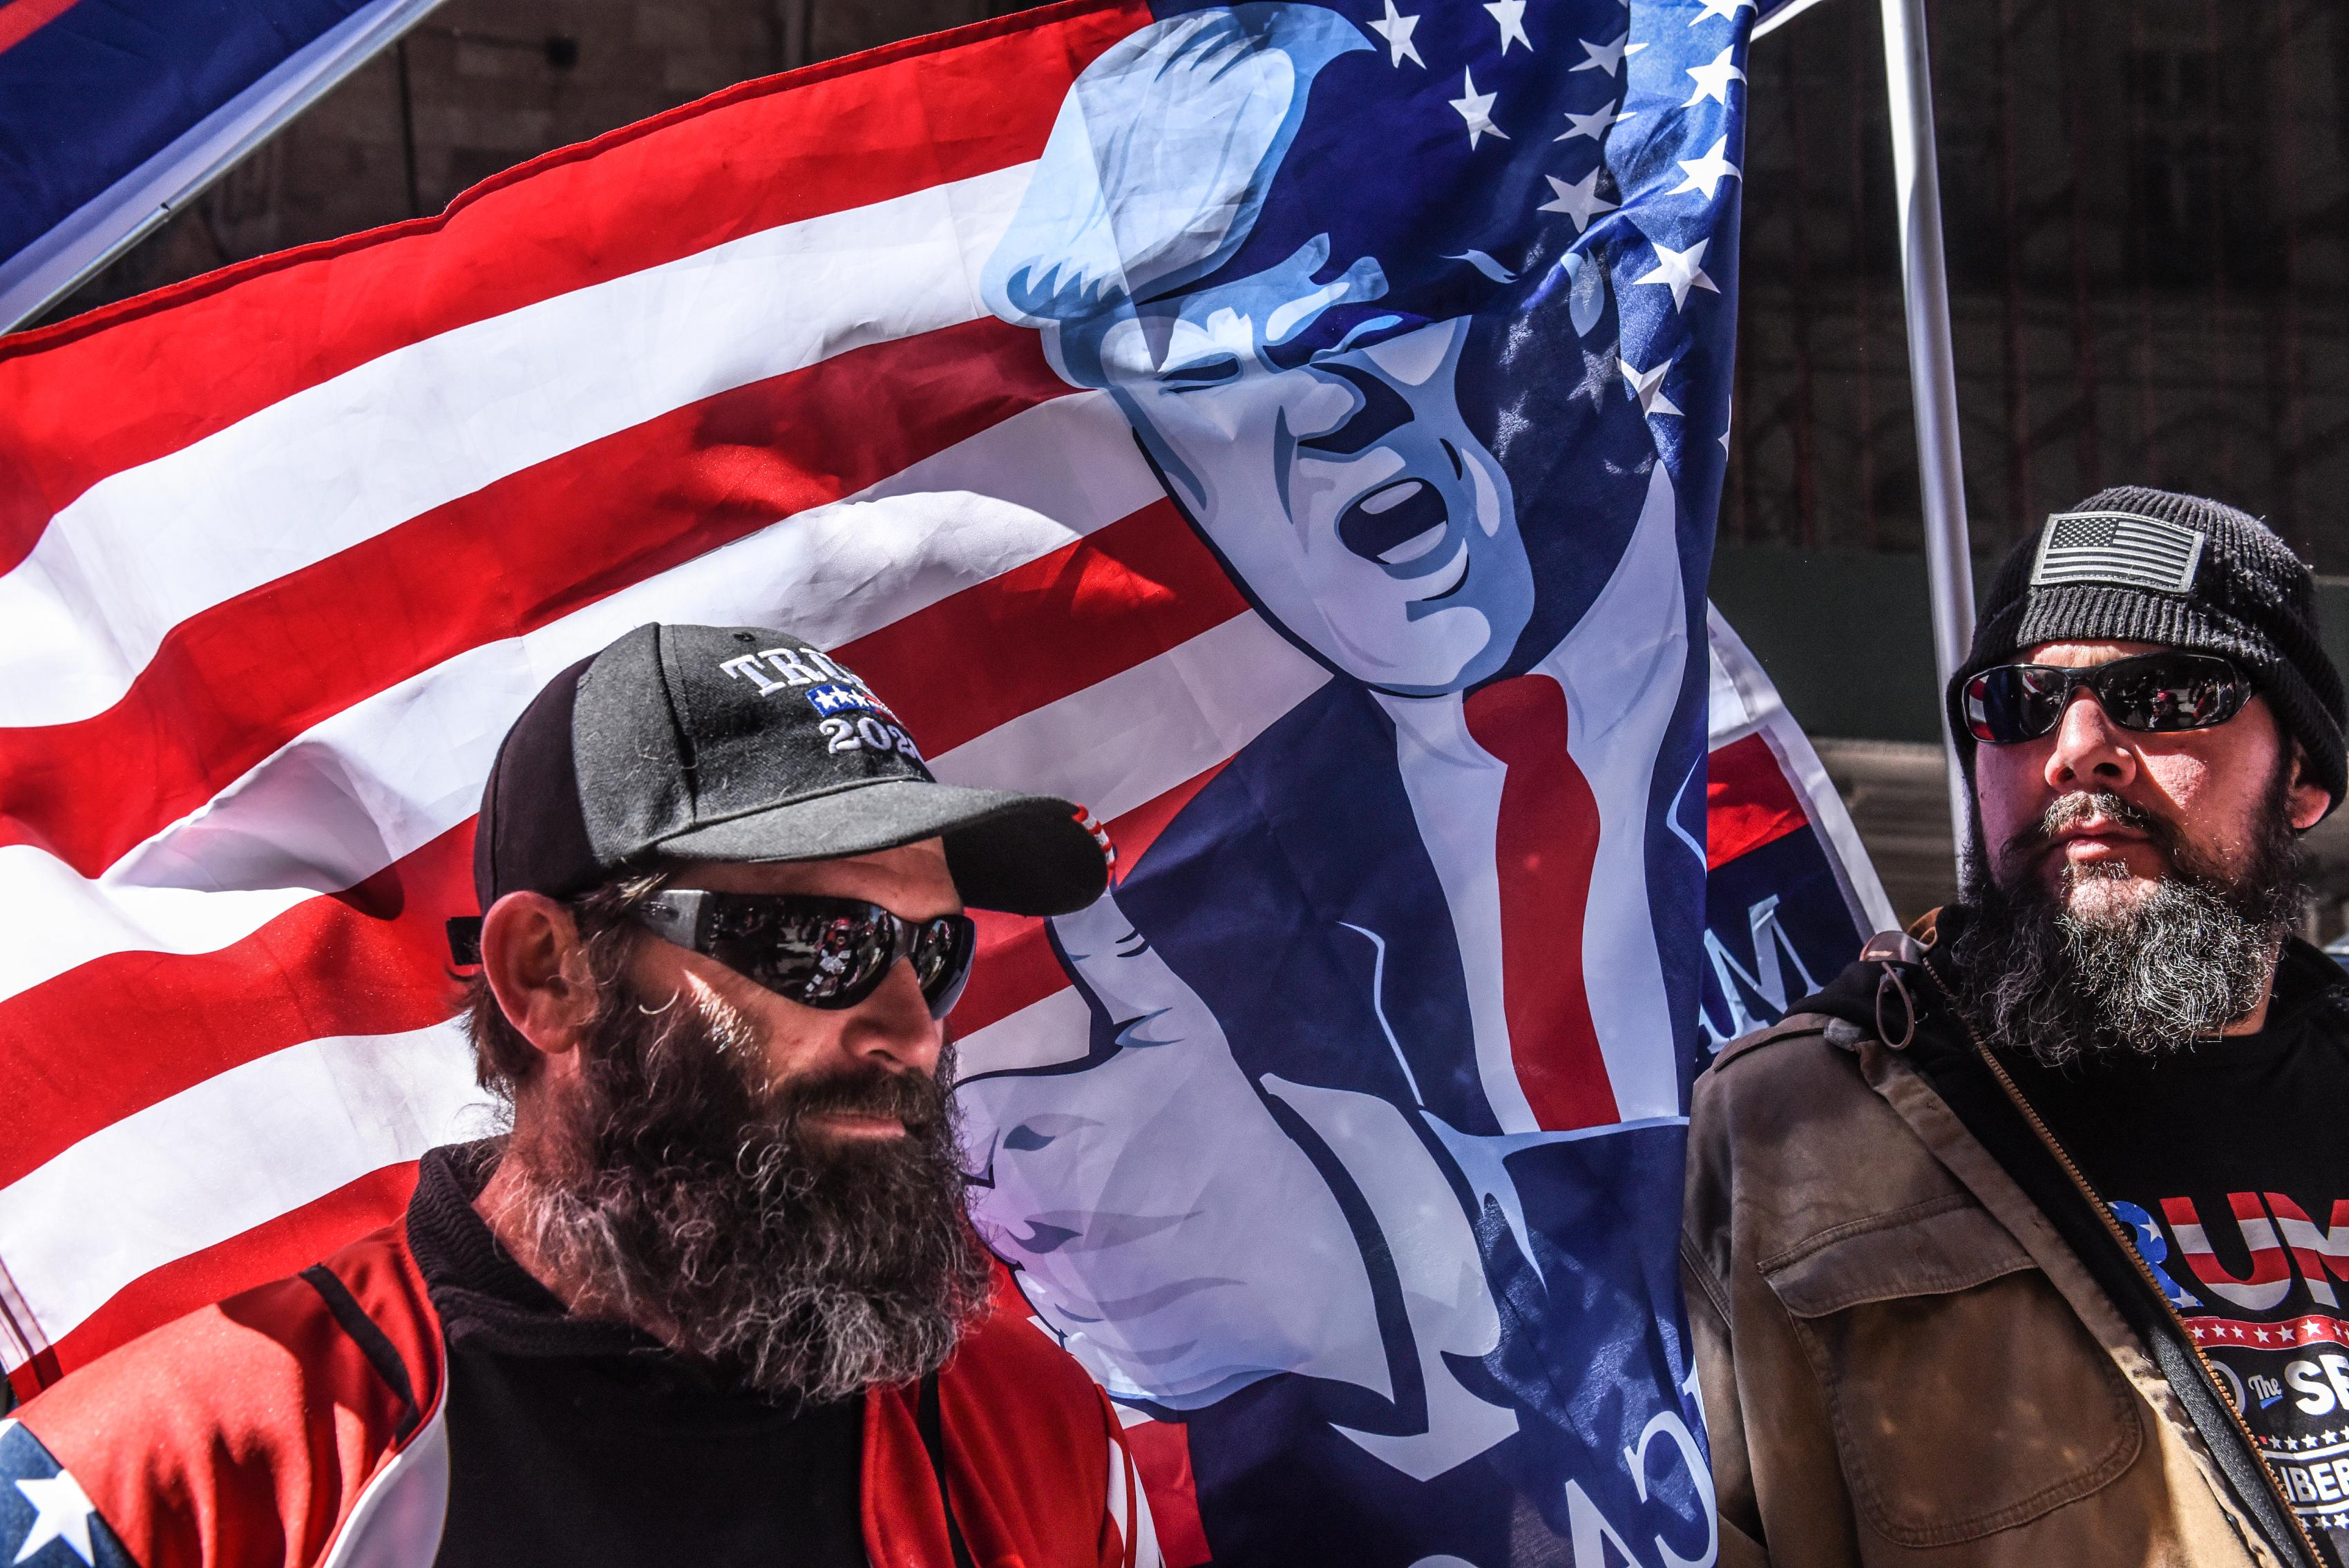 Two men in front of an American flag with Trump on it.